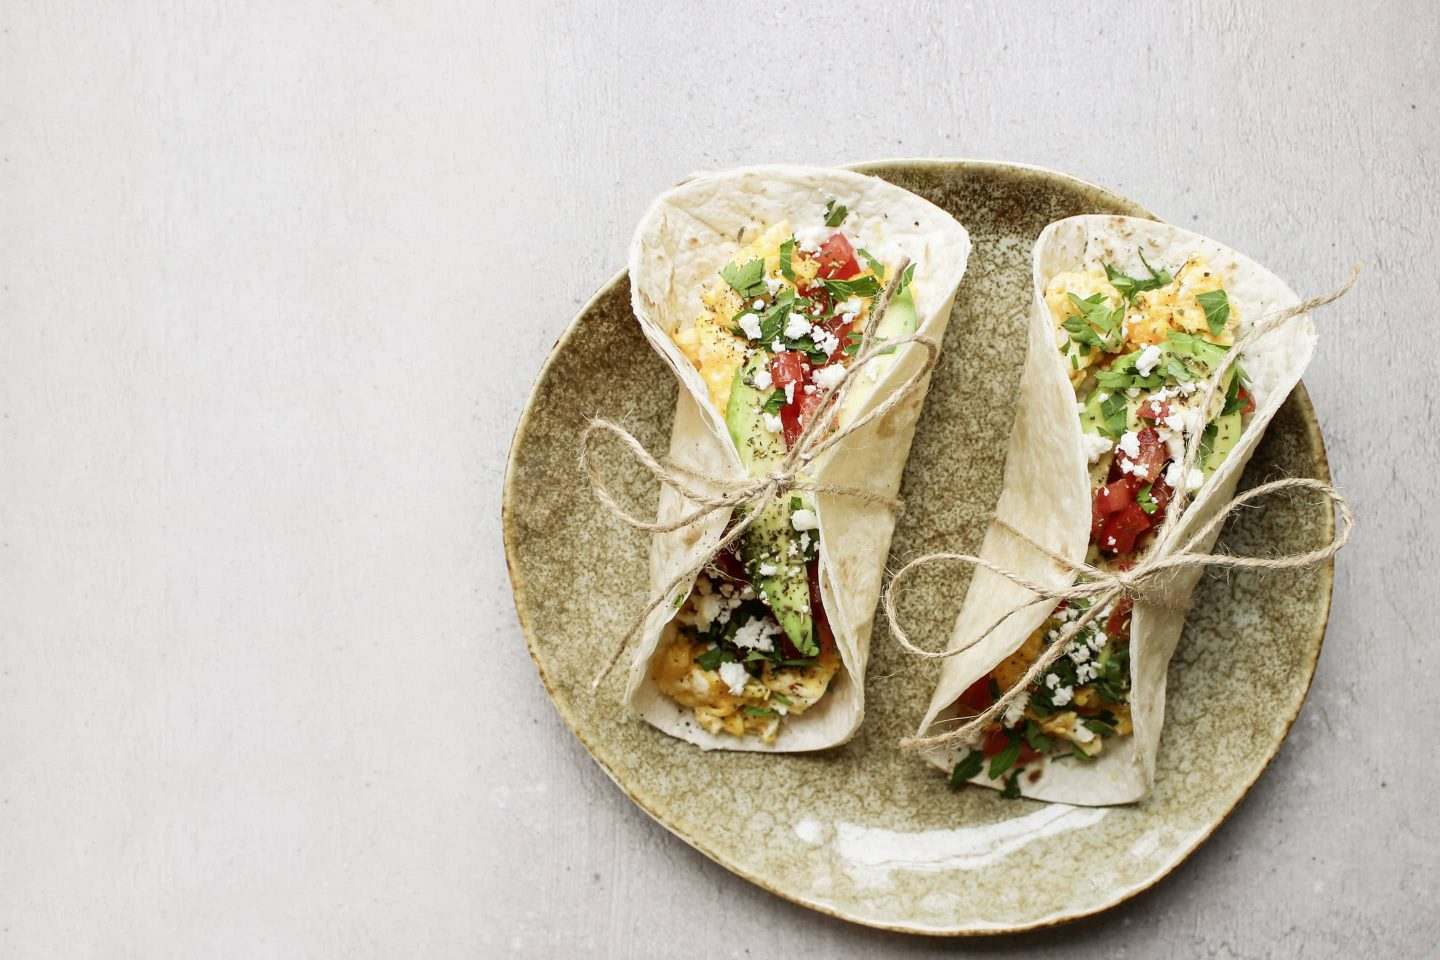 Breakfast tacos with herbs Rustikana on a beige plate tied with a thread